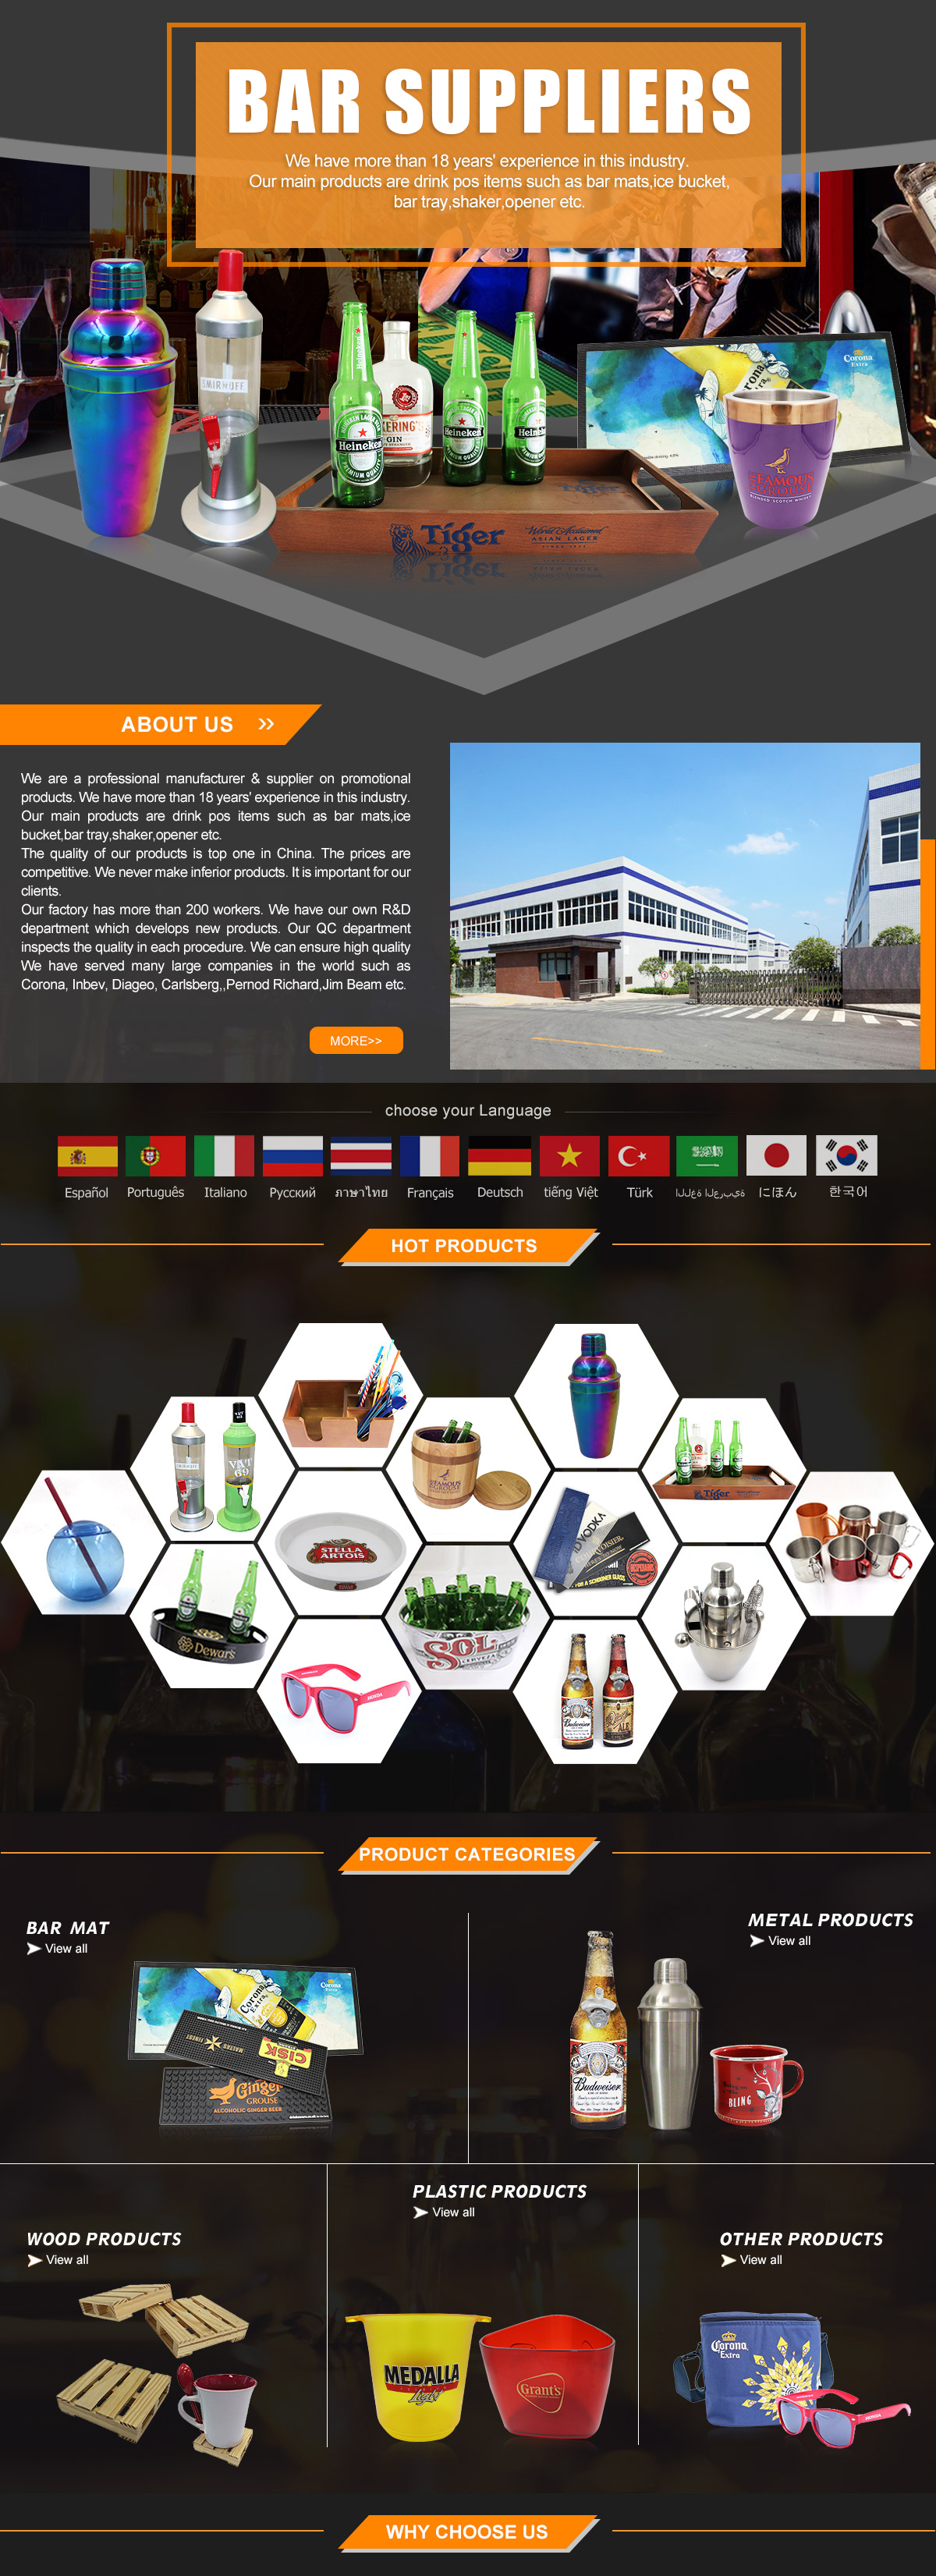 custom bar industry tile products extra knited drink mat firm mats promotional pos gift kingskong corona qingtian